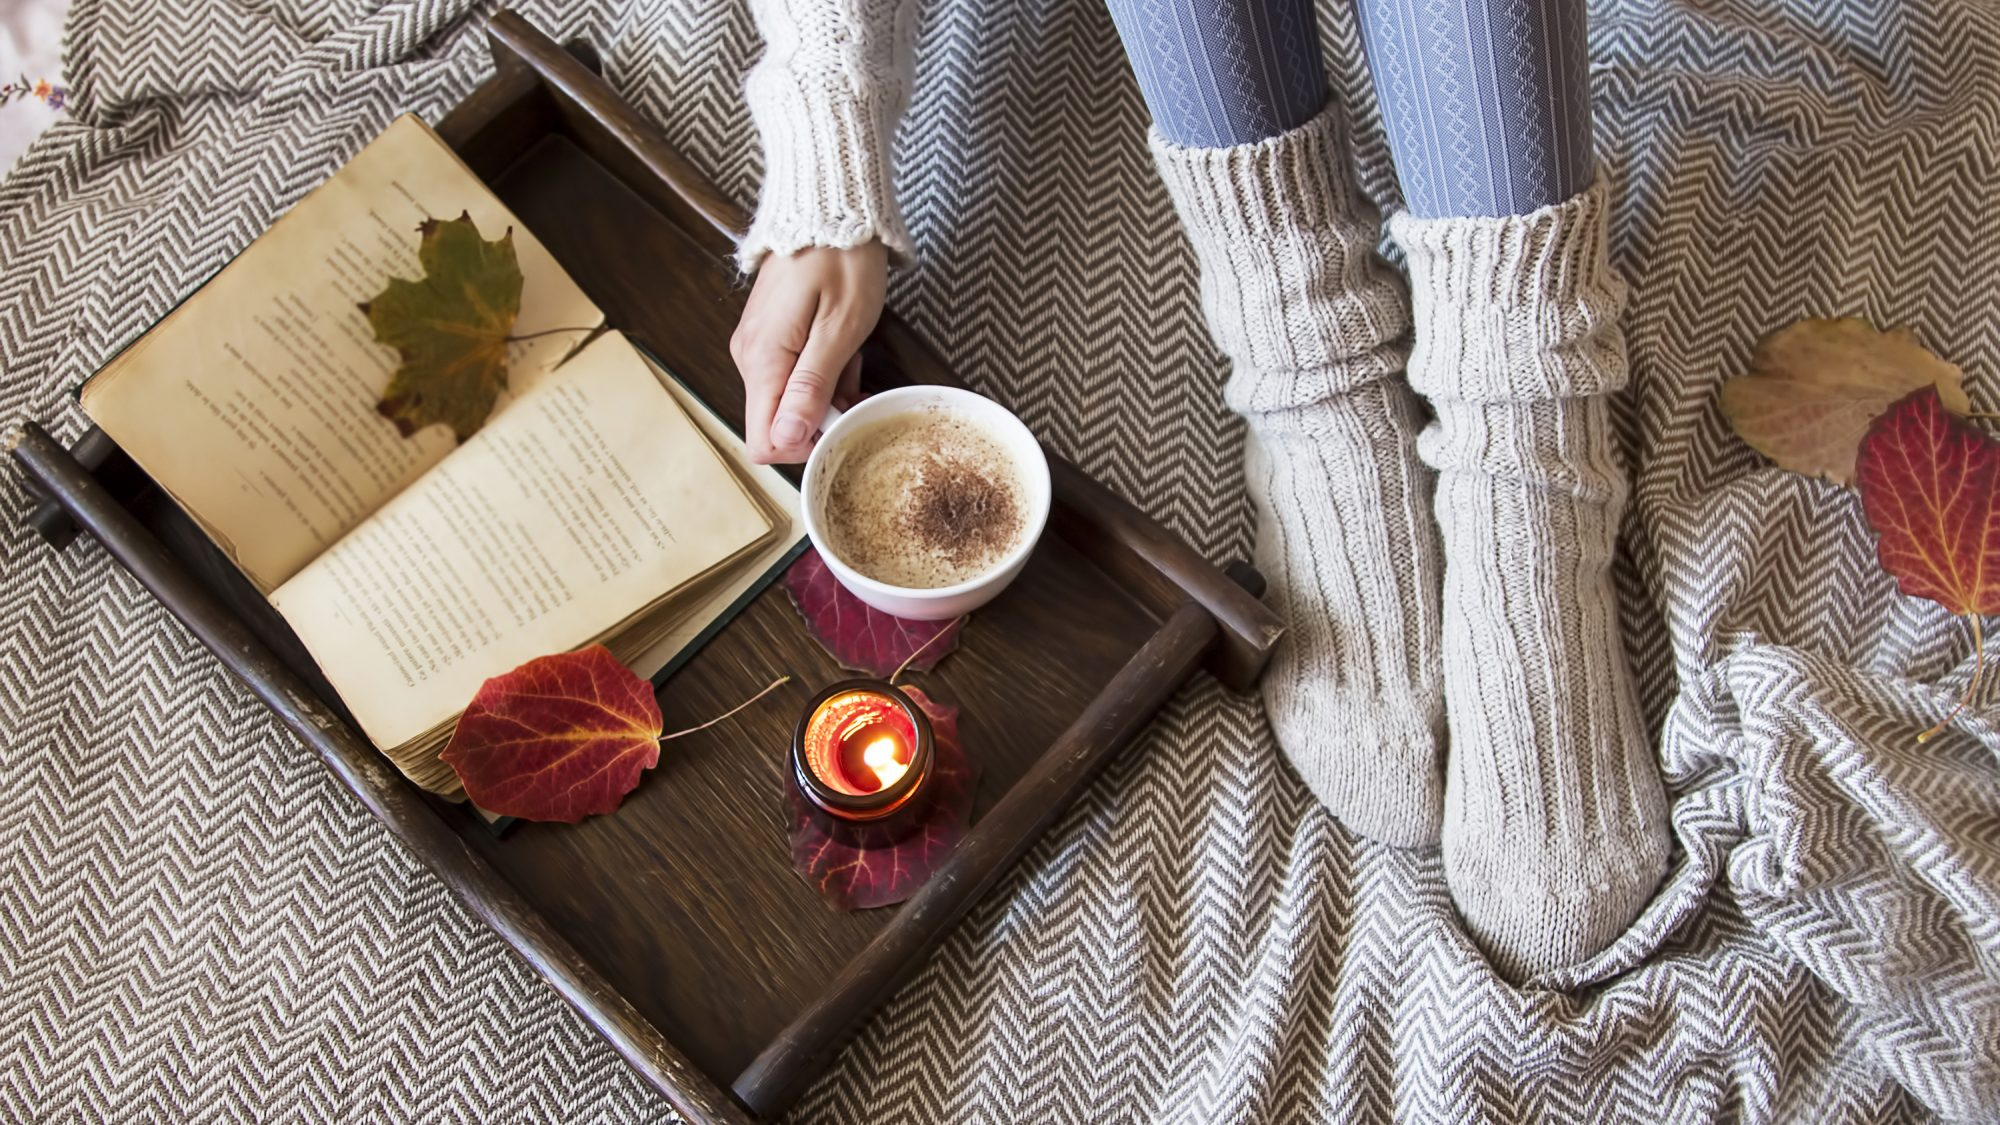 What is cottagecore - cottagecore explainer, how-to, images, and more (woman with cozy socks)